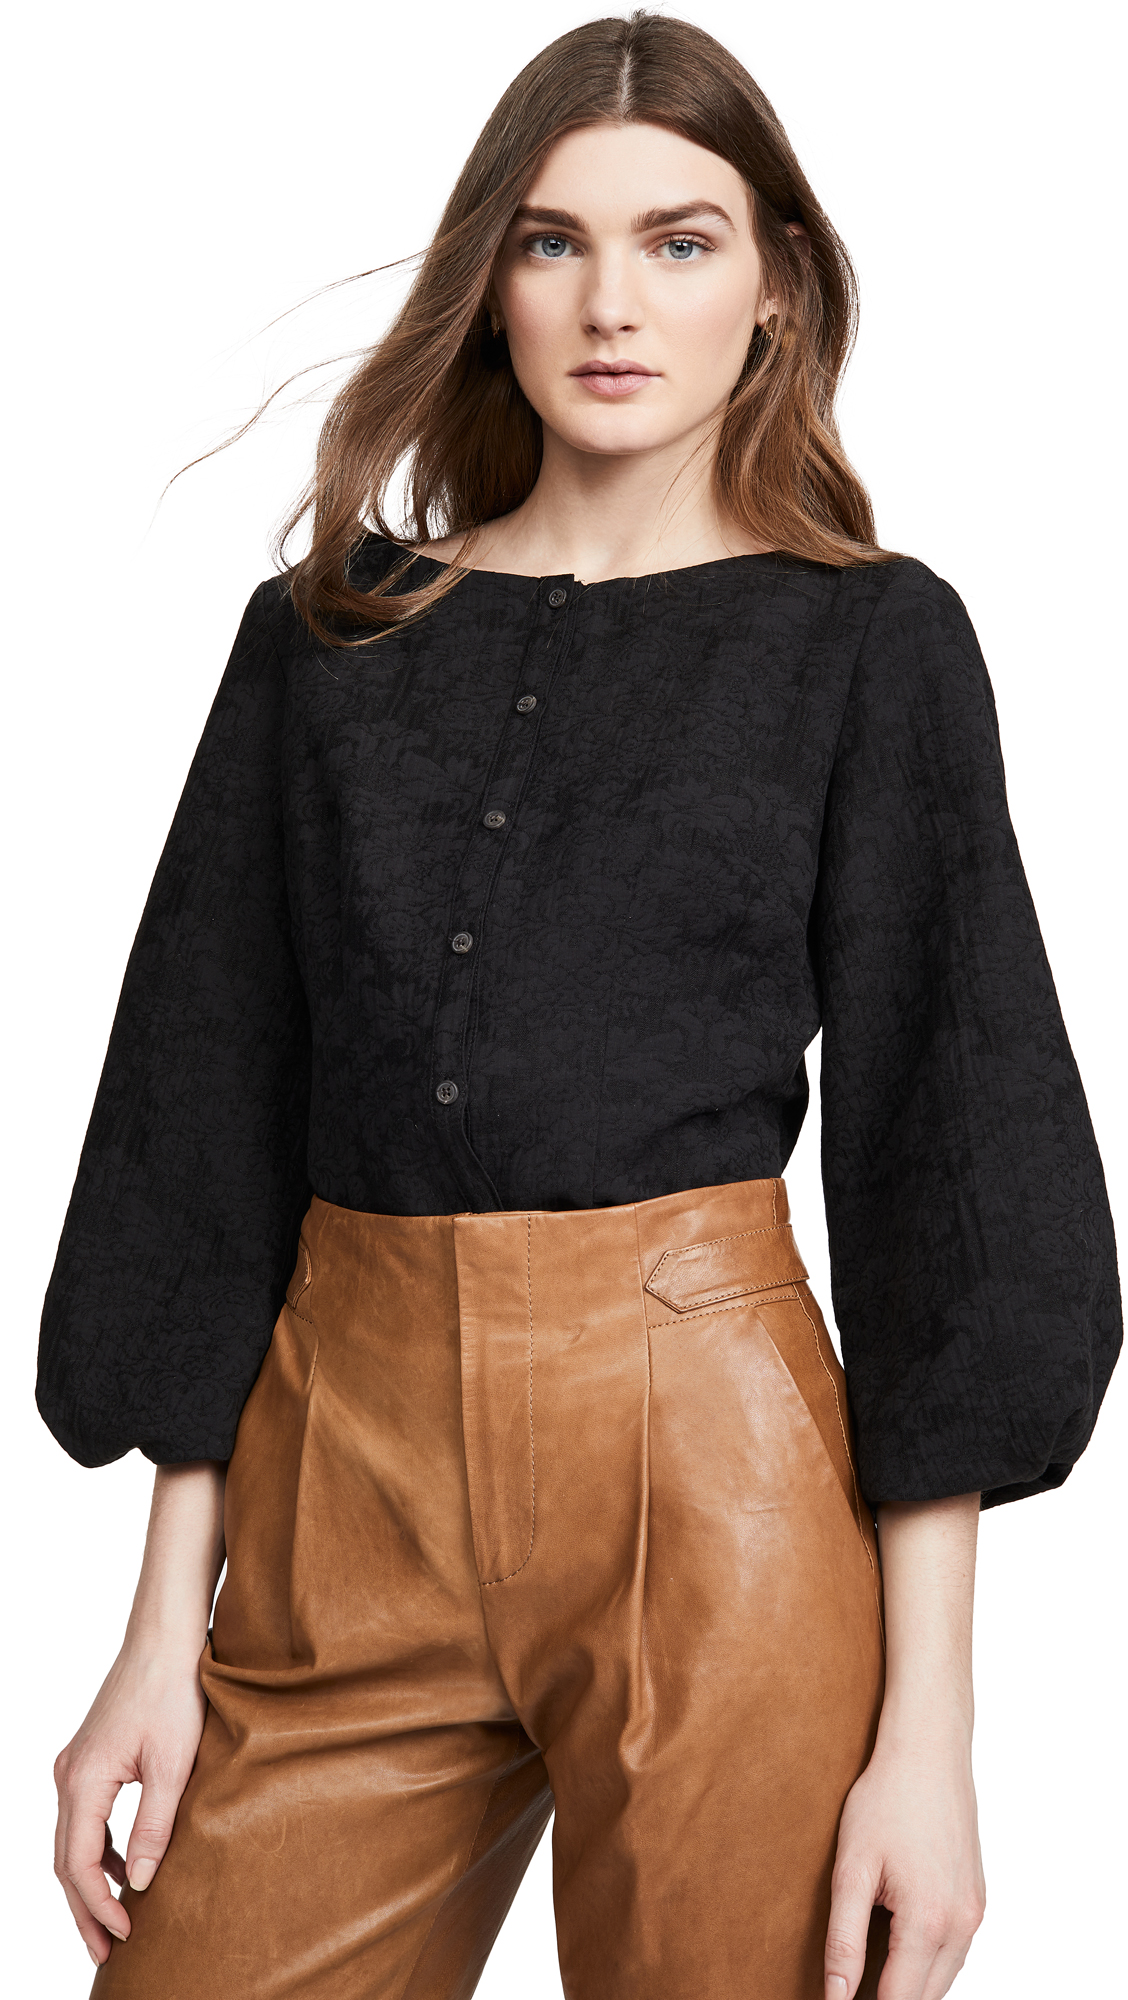 Mara Hoffman Gertrude Top - 55% Off Sale